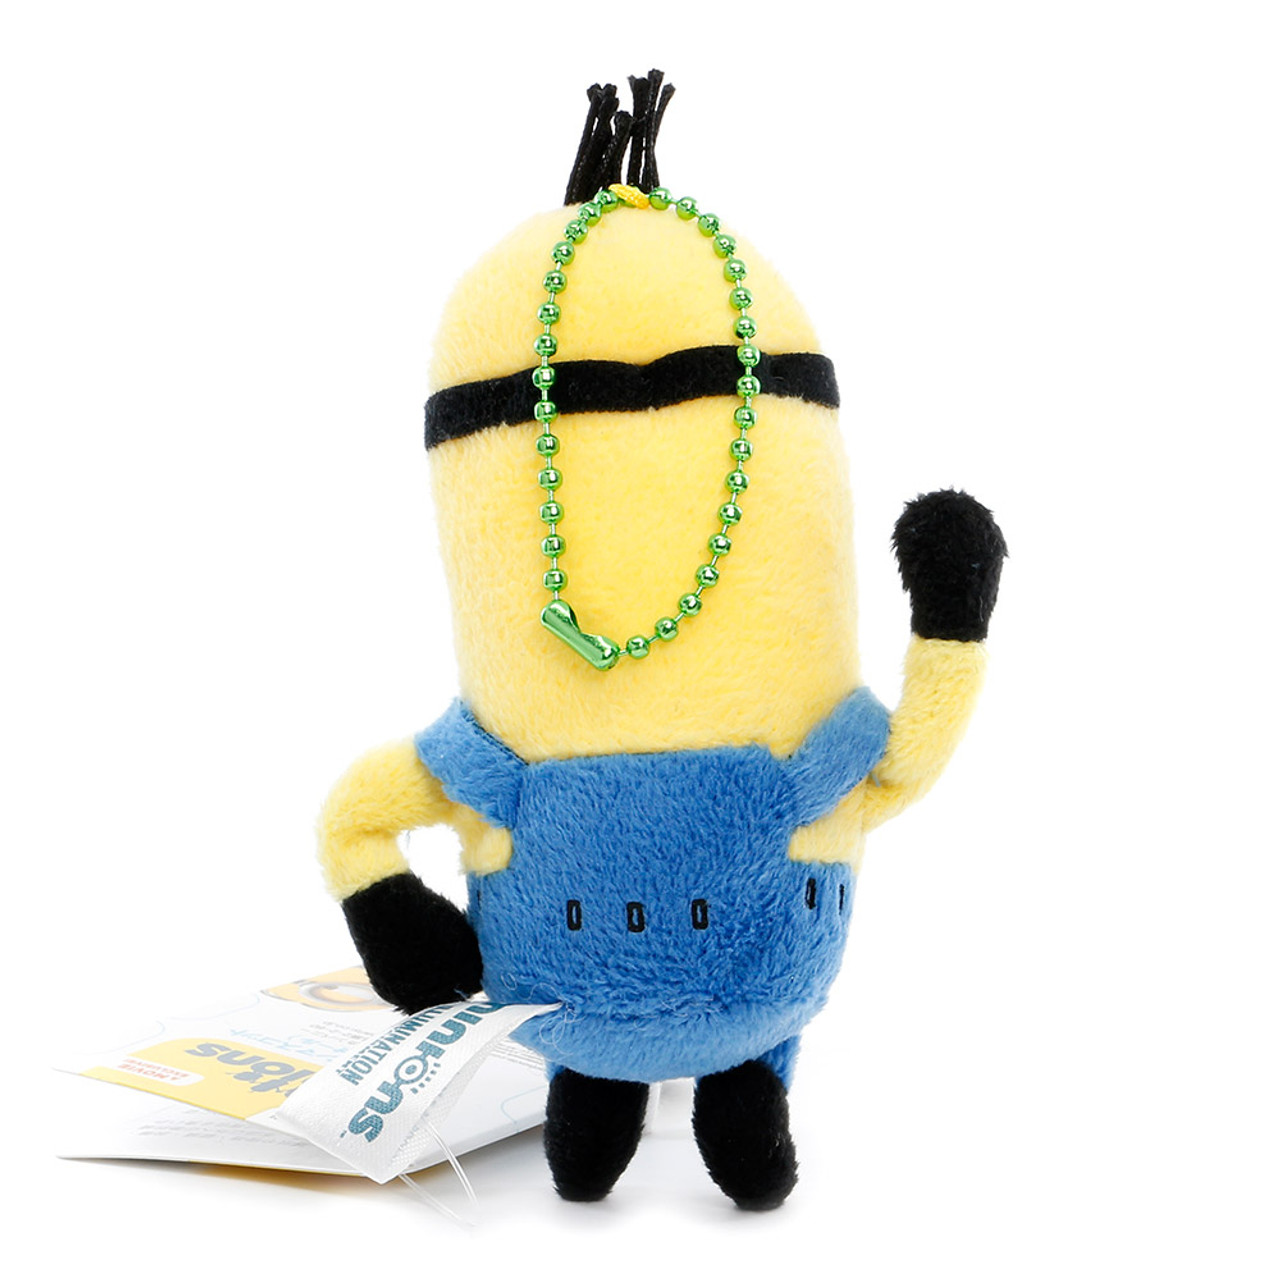 Kevin The Minions Mascot Plush Doll Charms ( Back View )